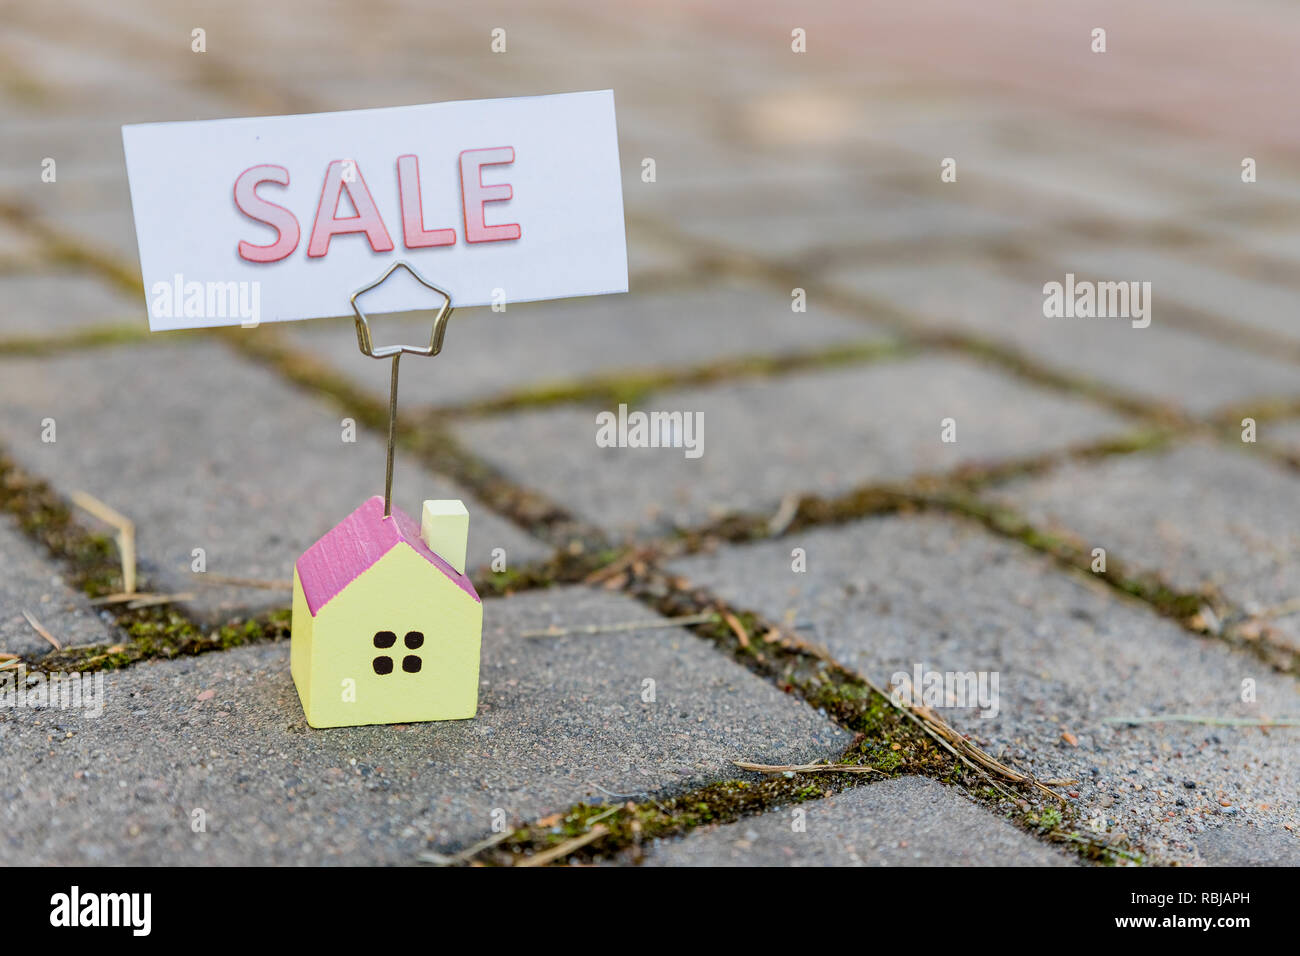 Home For Sale Real Estate Sign and Beautiful New House.For sale sign. sale board In Front Yard .loans, Bank debt, financial problems, the issue of new housing concept.Copy space - Stock Image